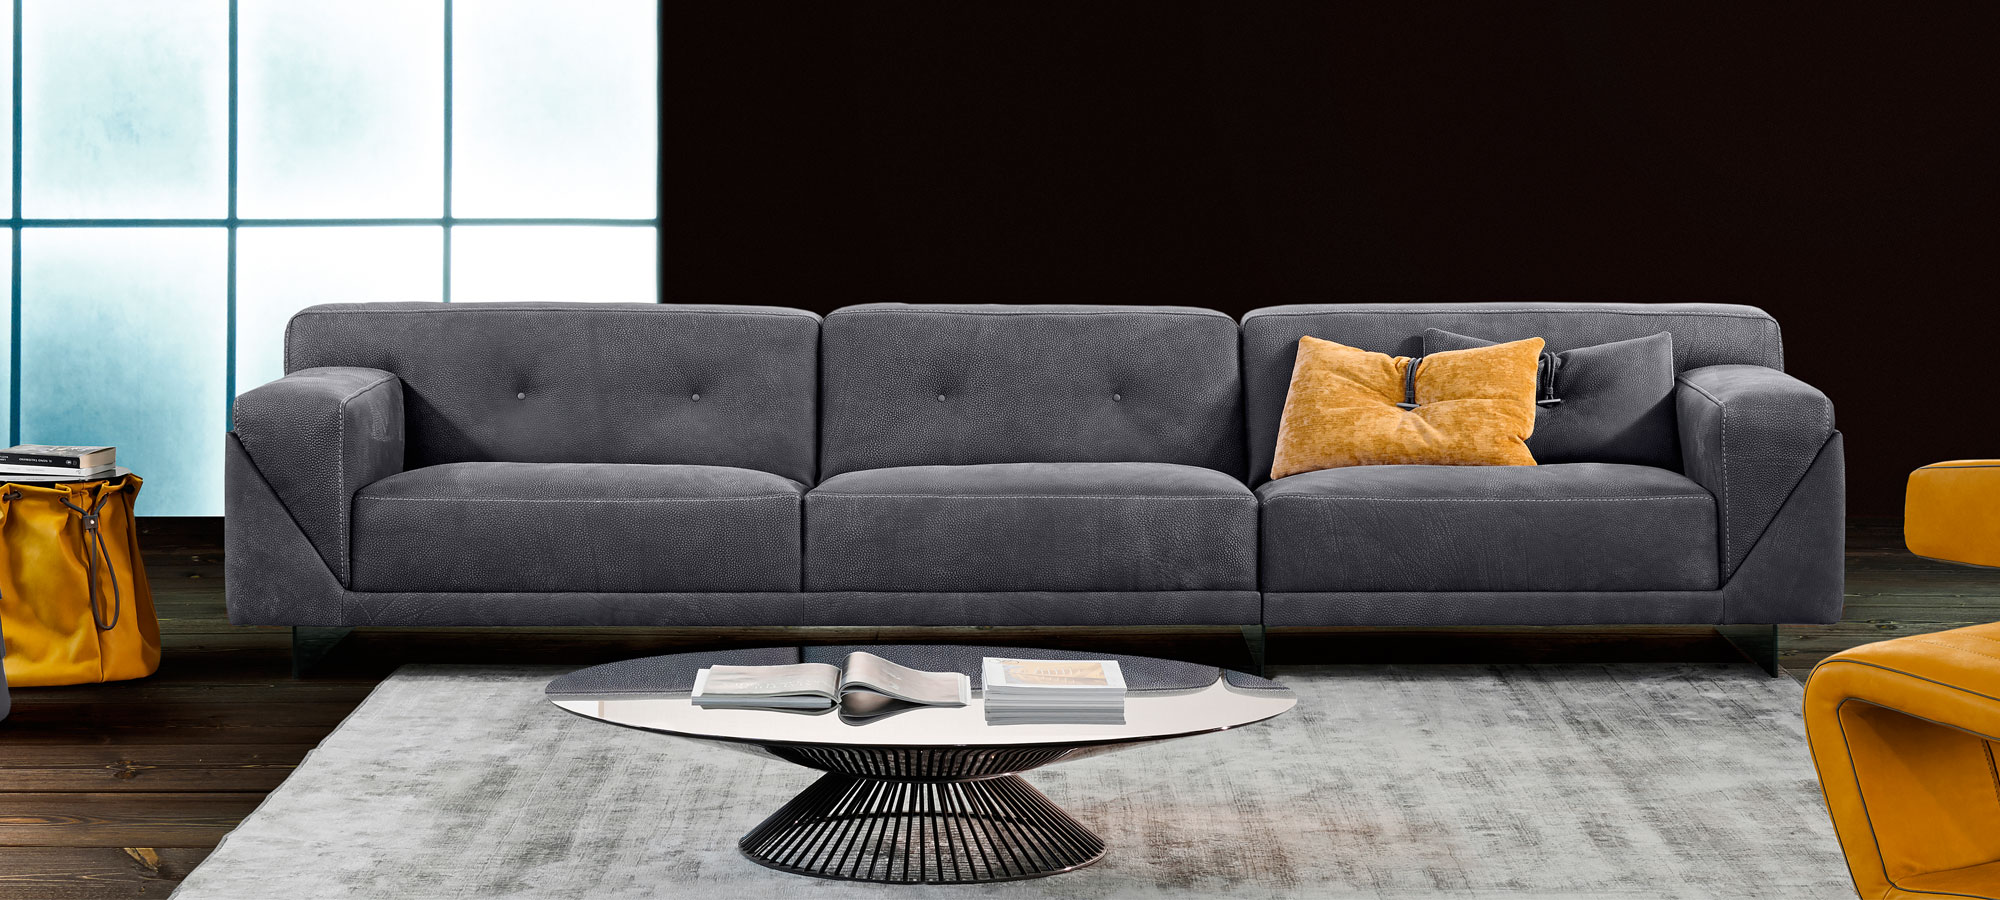 gamma sofas sectional sofa with reversible chaise ottoman grant casarredo